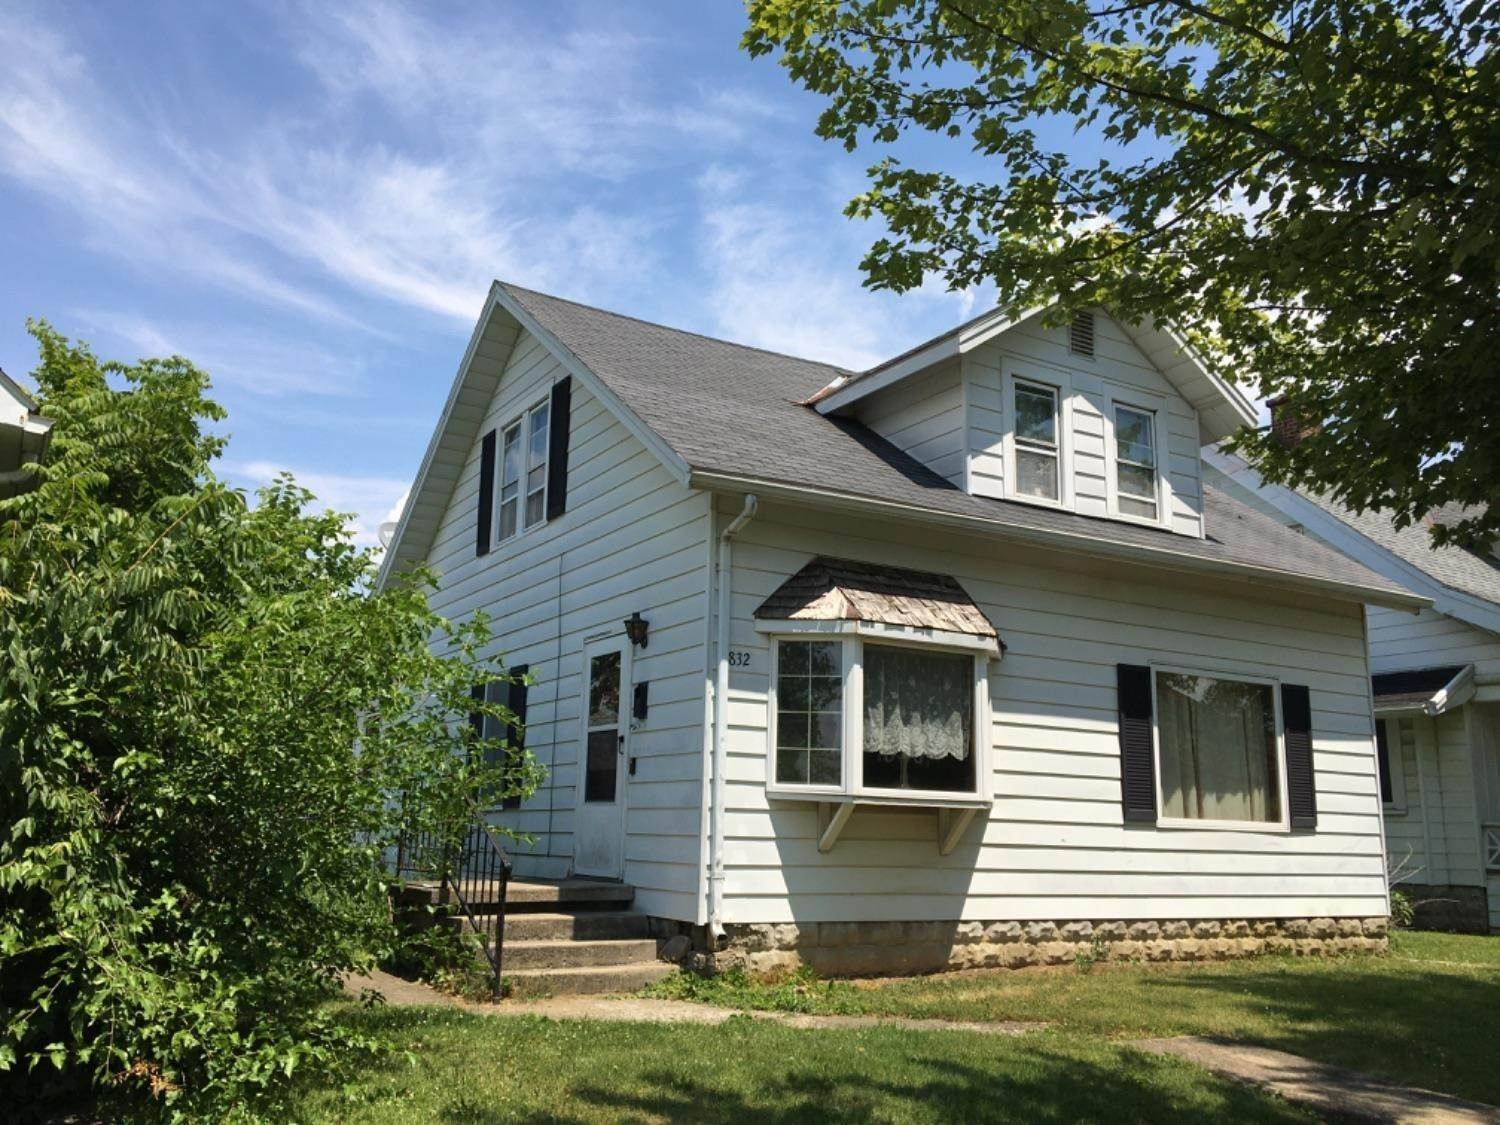 Single Family Homes for Sale at 832 S Main Street Washington Court House, Ohio 43160 United States